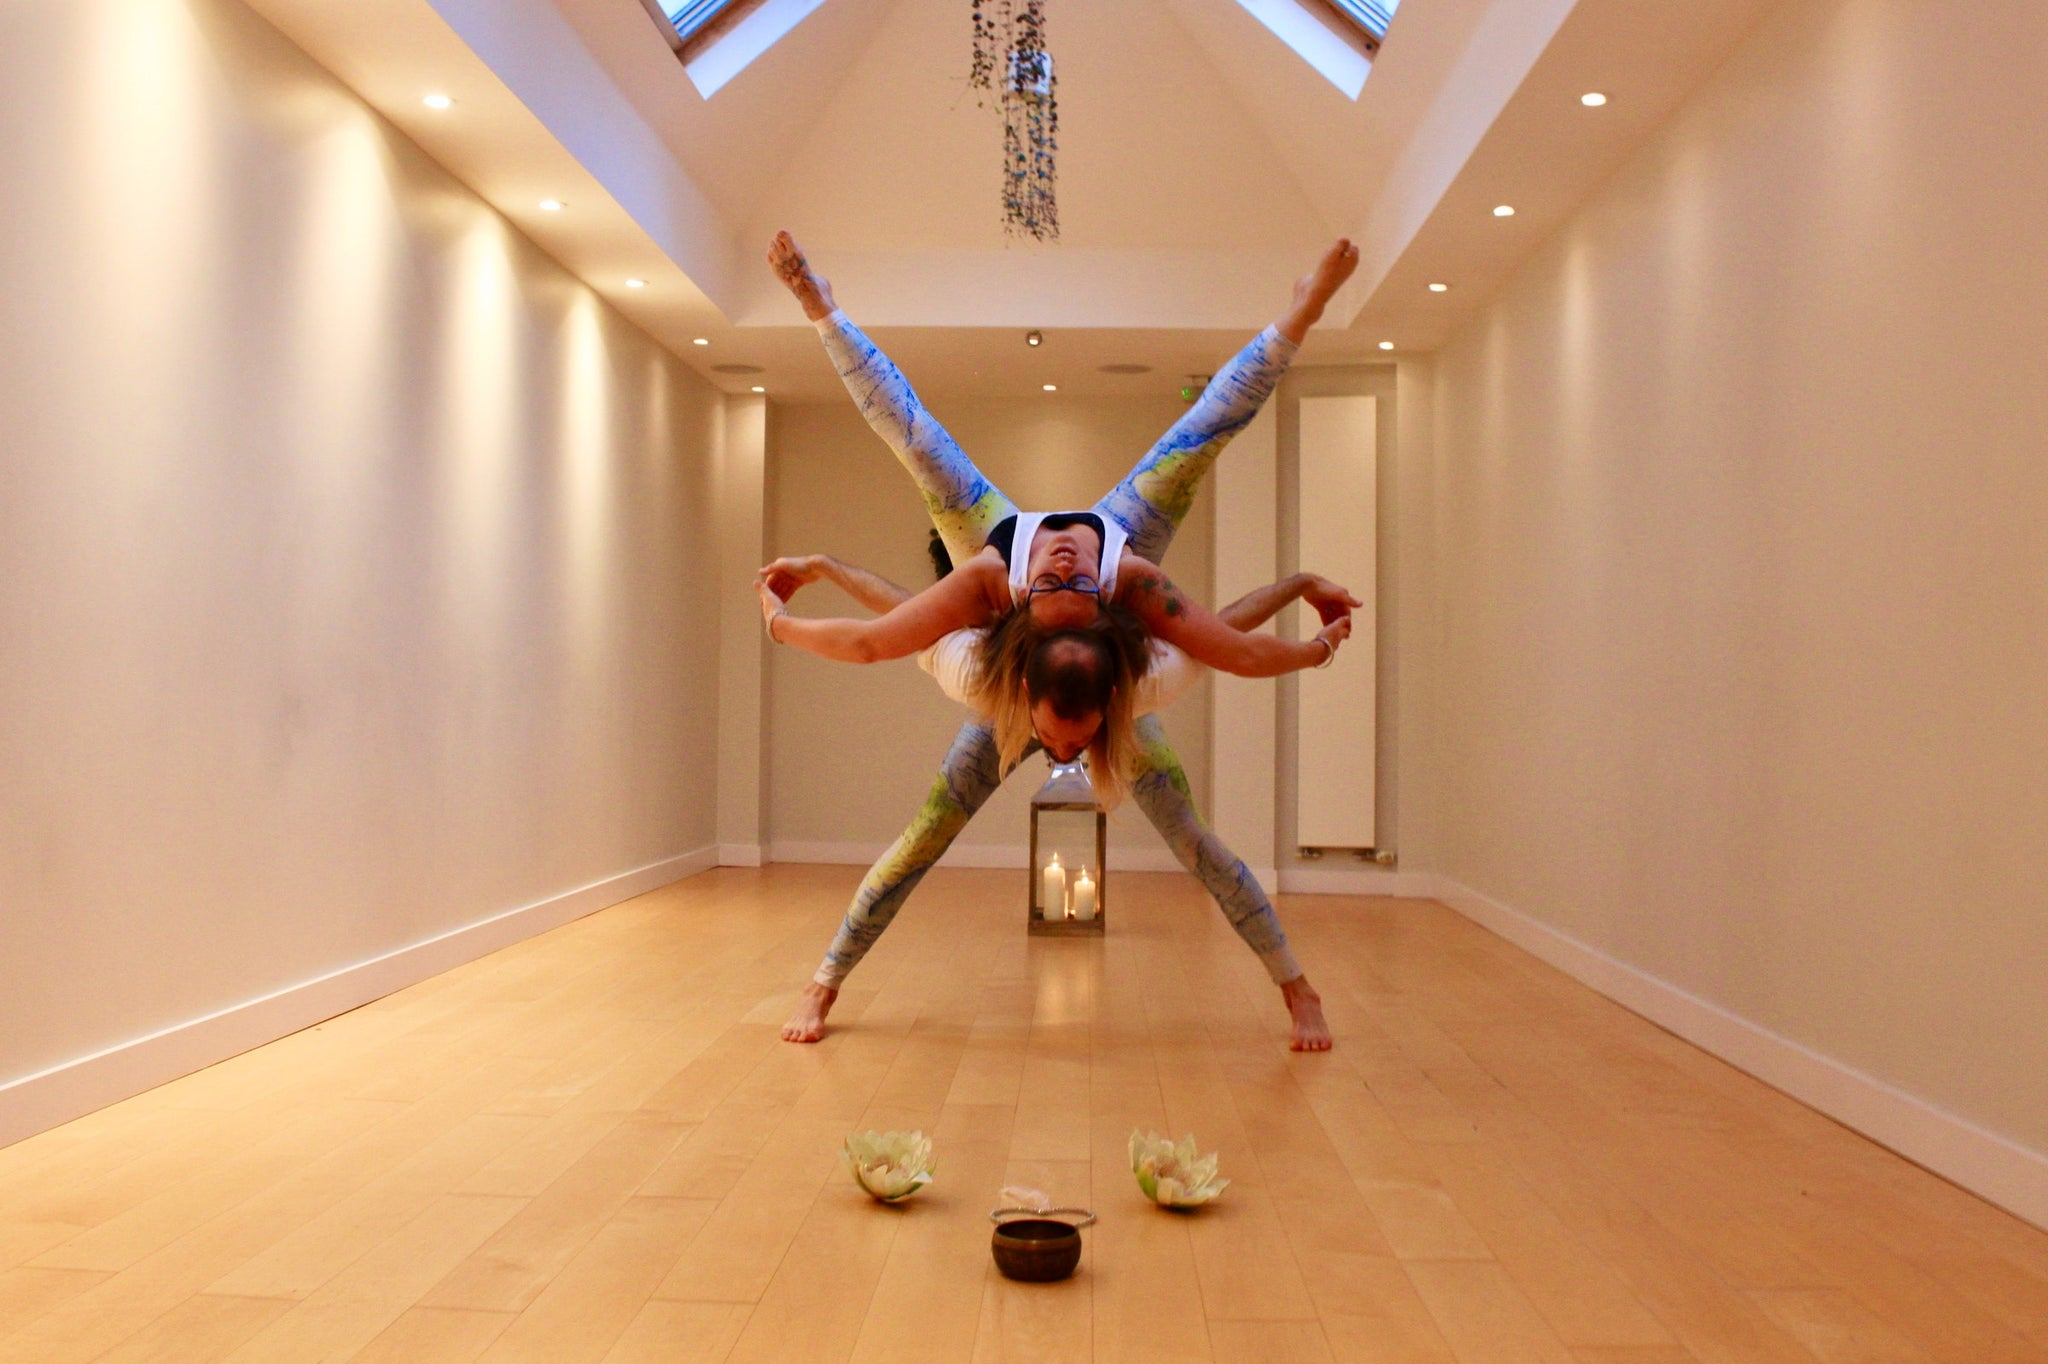 acroyoga alternative dates brighton